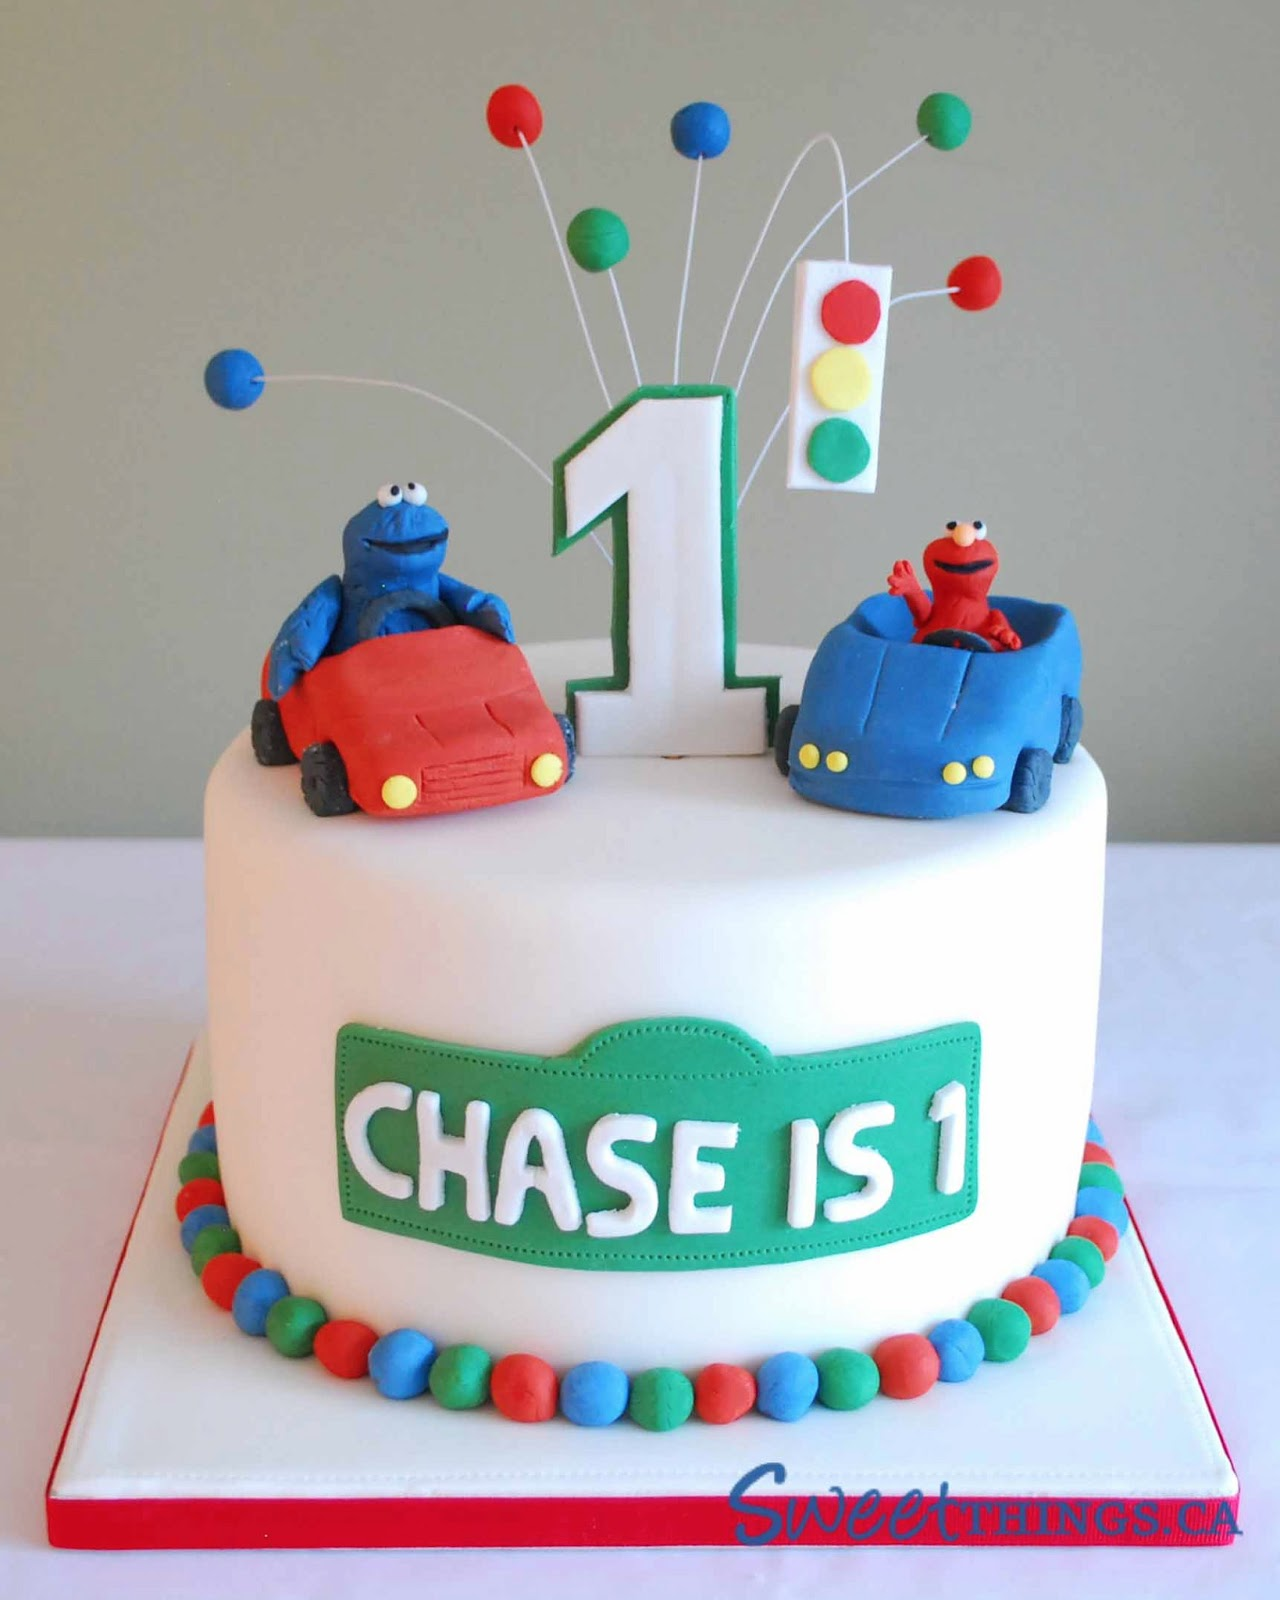 7 Photos of Sesame Street Themed Birthday Cakes